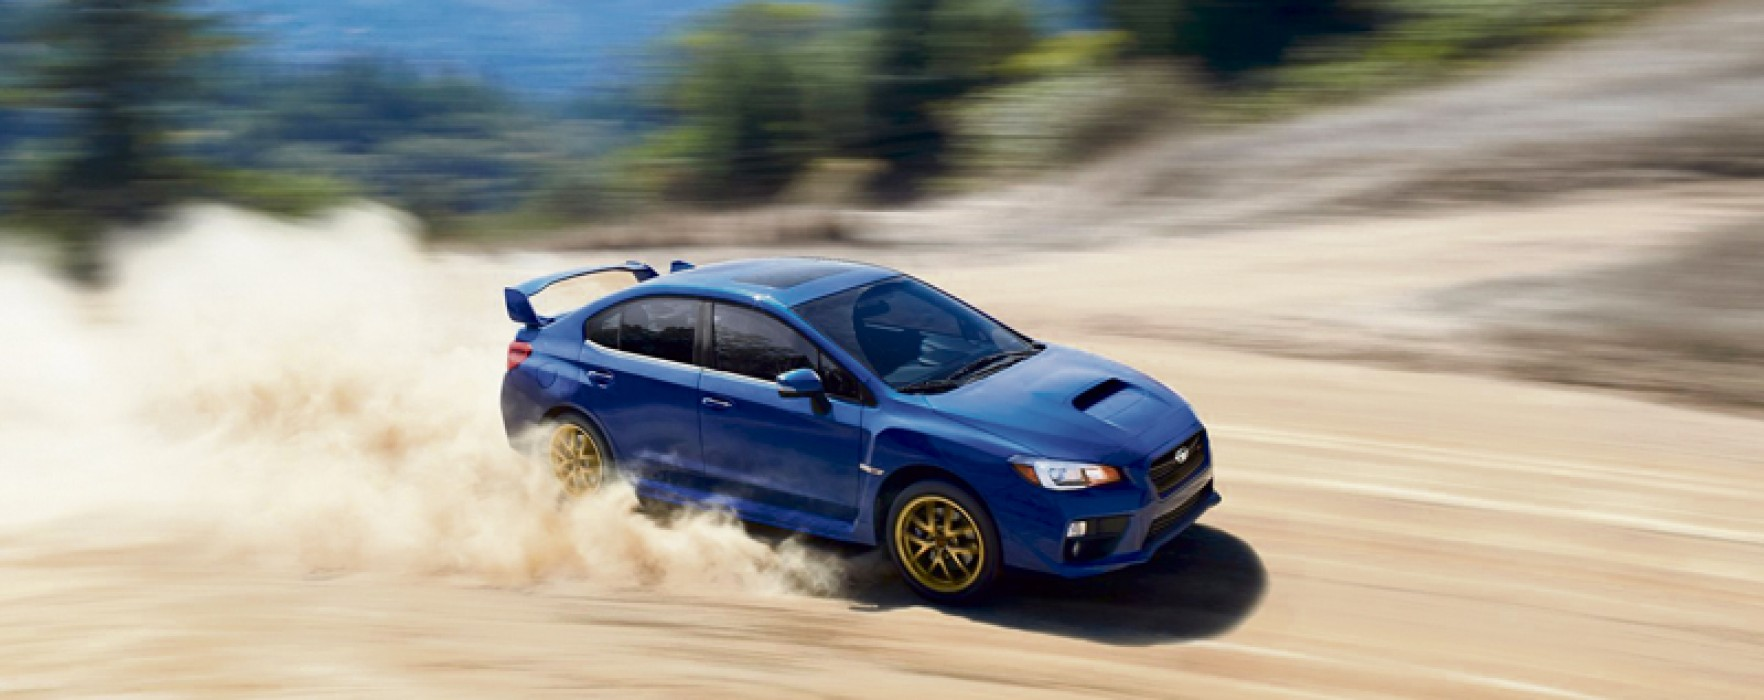 Subaru WRX STI Sport-tech Package 2016 (47 169 $ + taxes)